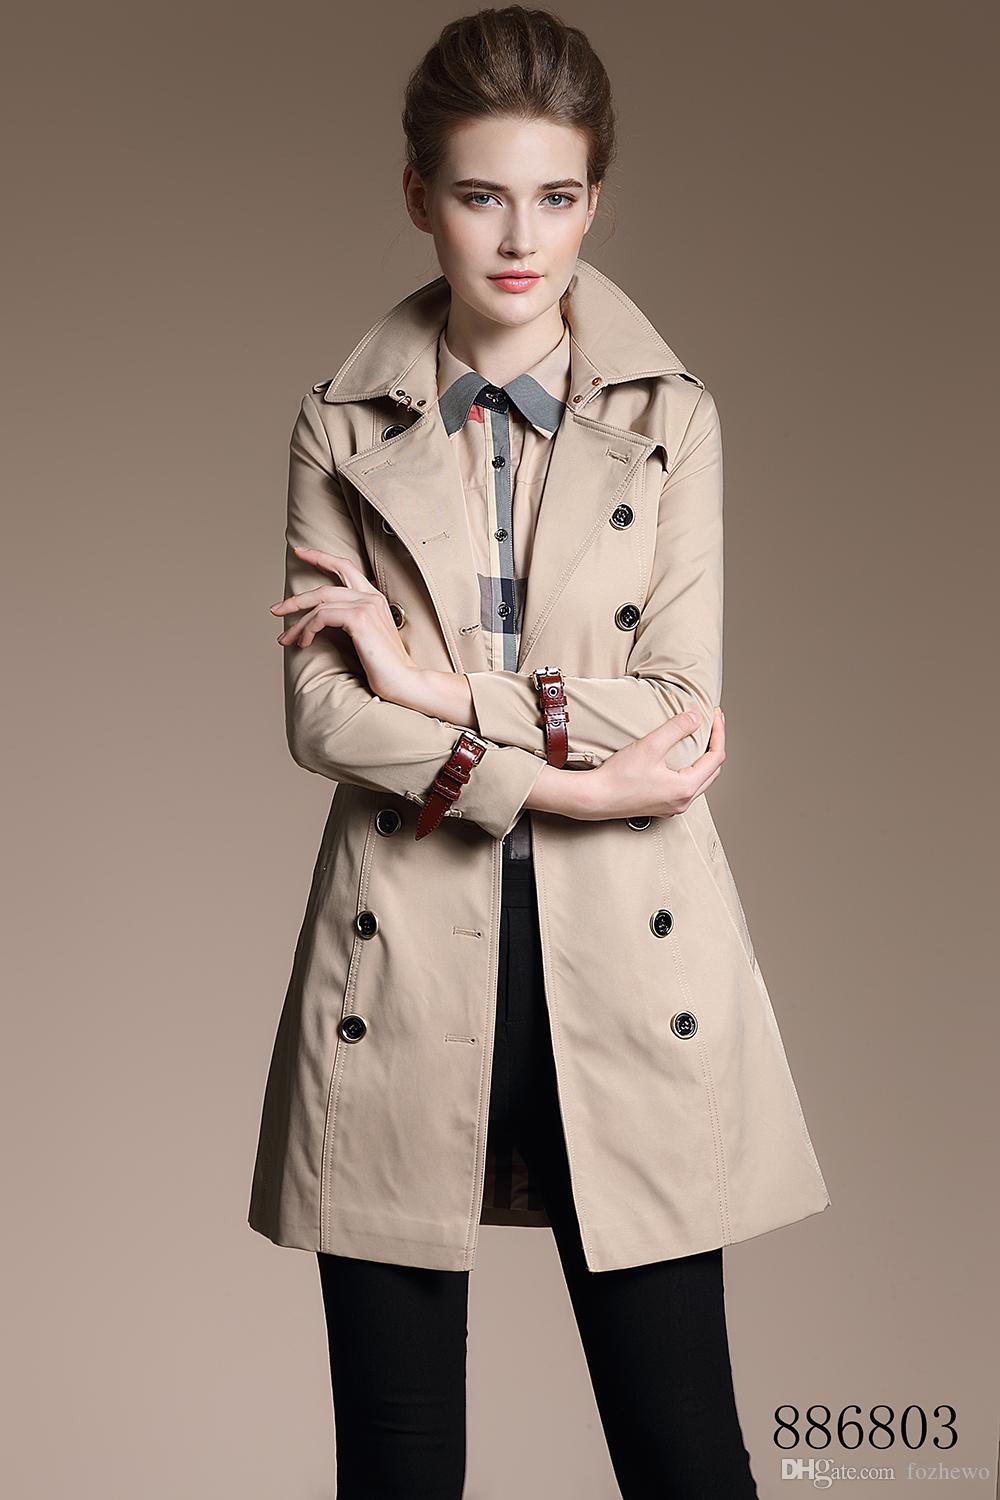 exceptional range of colors favorable price Official Website 2019 Spring Autumn New High Fashion Brand Woman Classic Double Breasted  Trench Coat Waterproof Raincoat Business Outerwear From Fozhewo, $156.78 |  ...